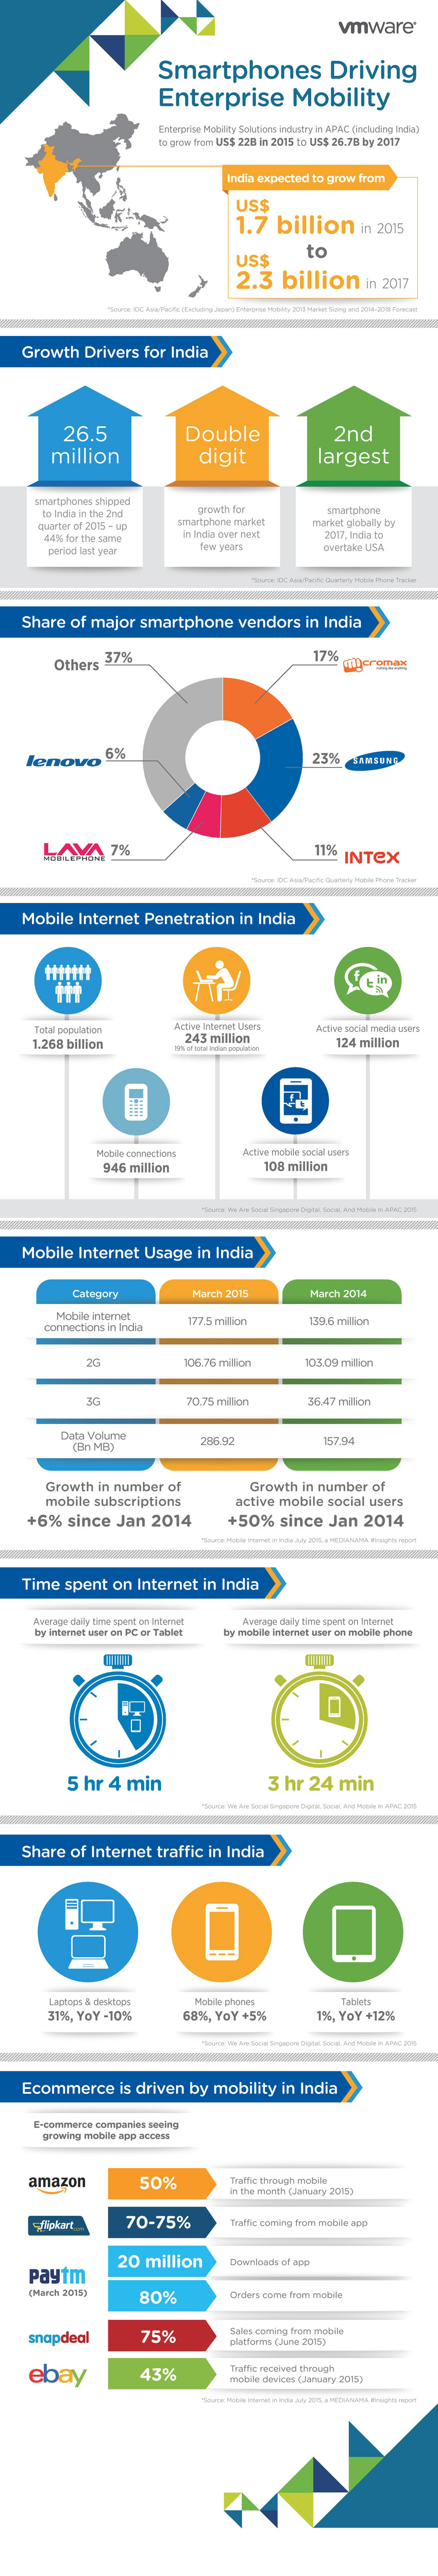 How Smartphones driving Enterprise Mobility in India